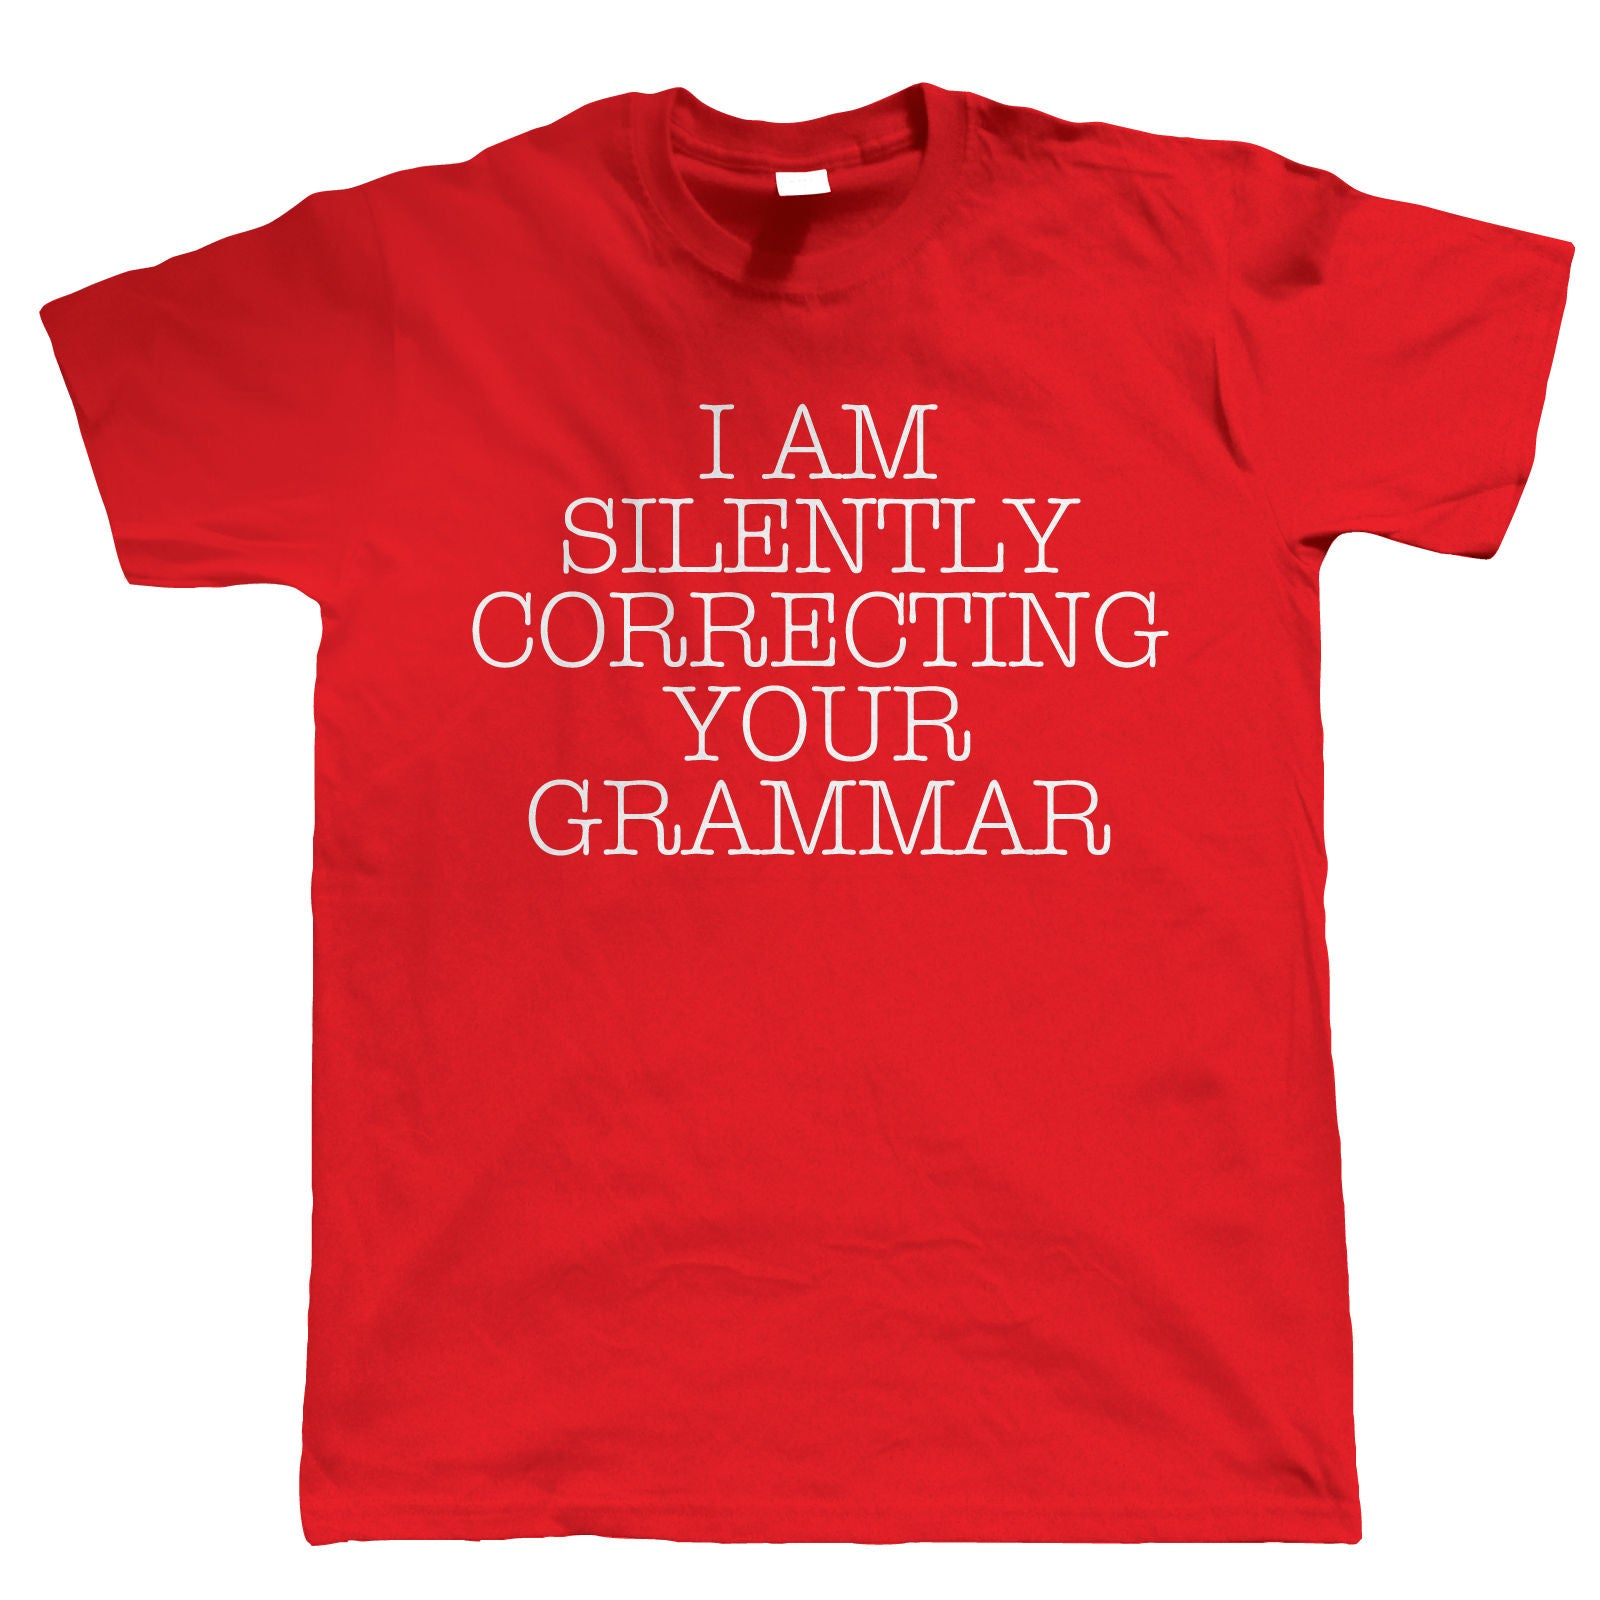 I Am Silently Correcting Your Grammar, Mens Funny Tshirt